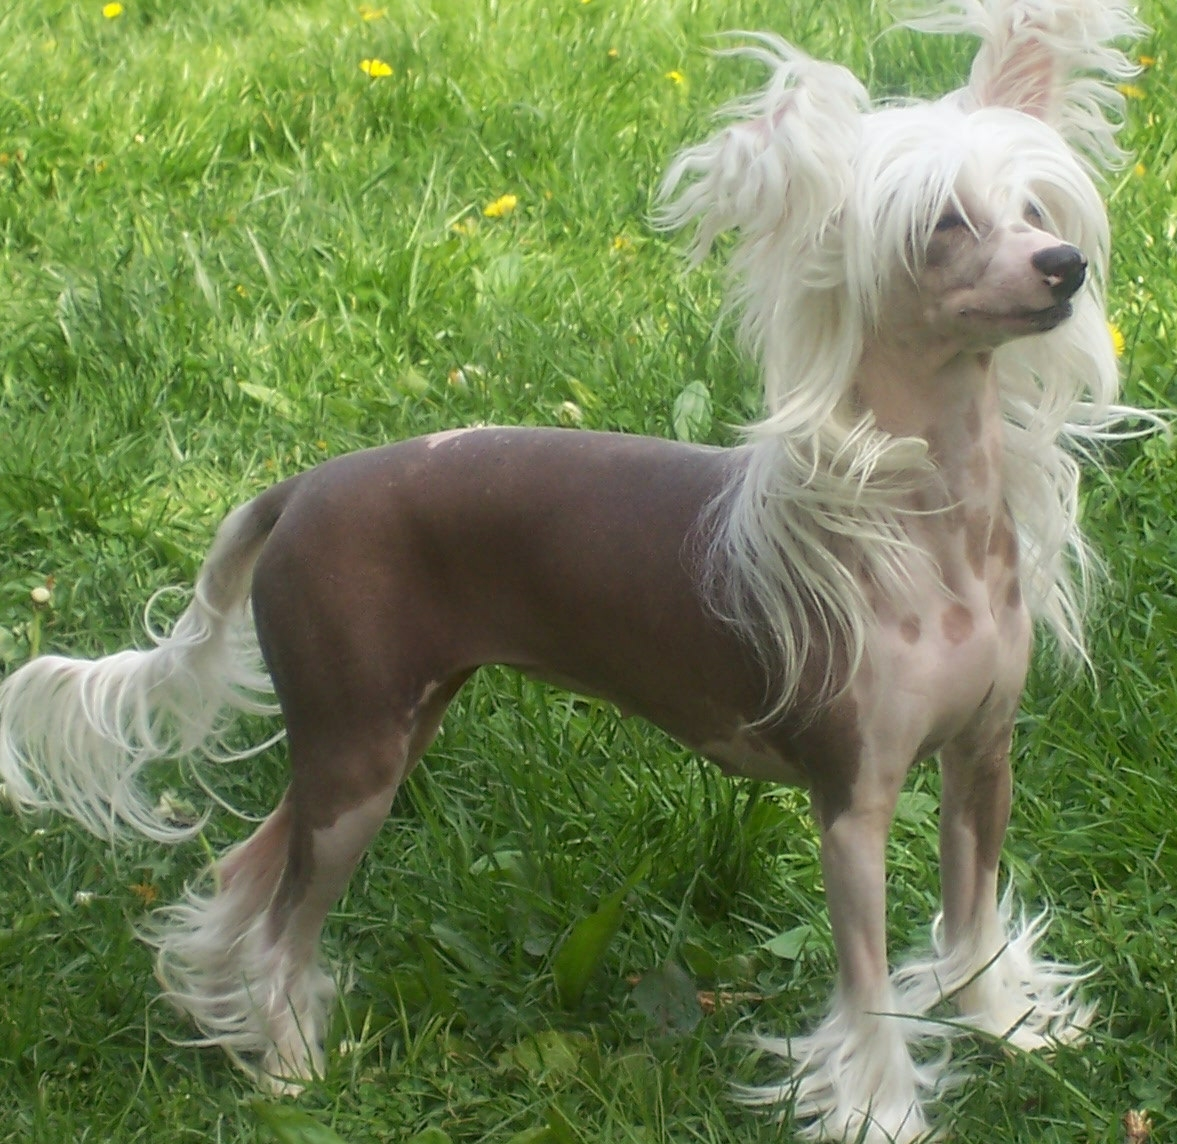 All List Of Different Dogs Breeds: Types of Dogs -Toy dog